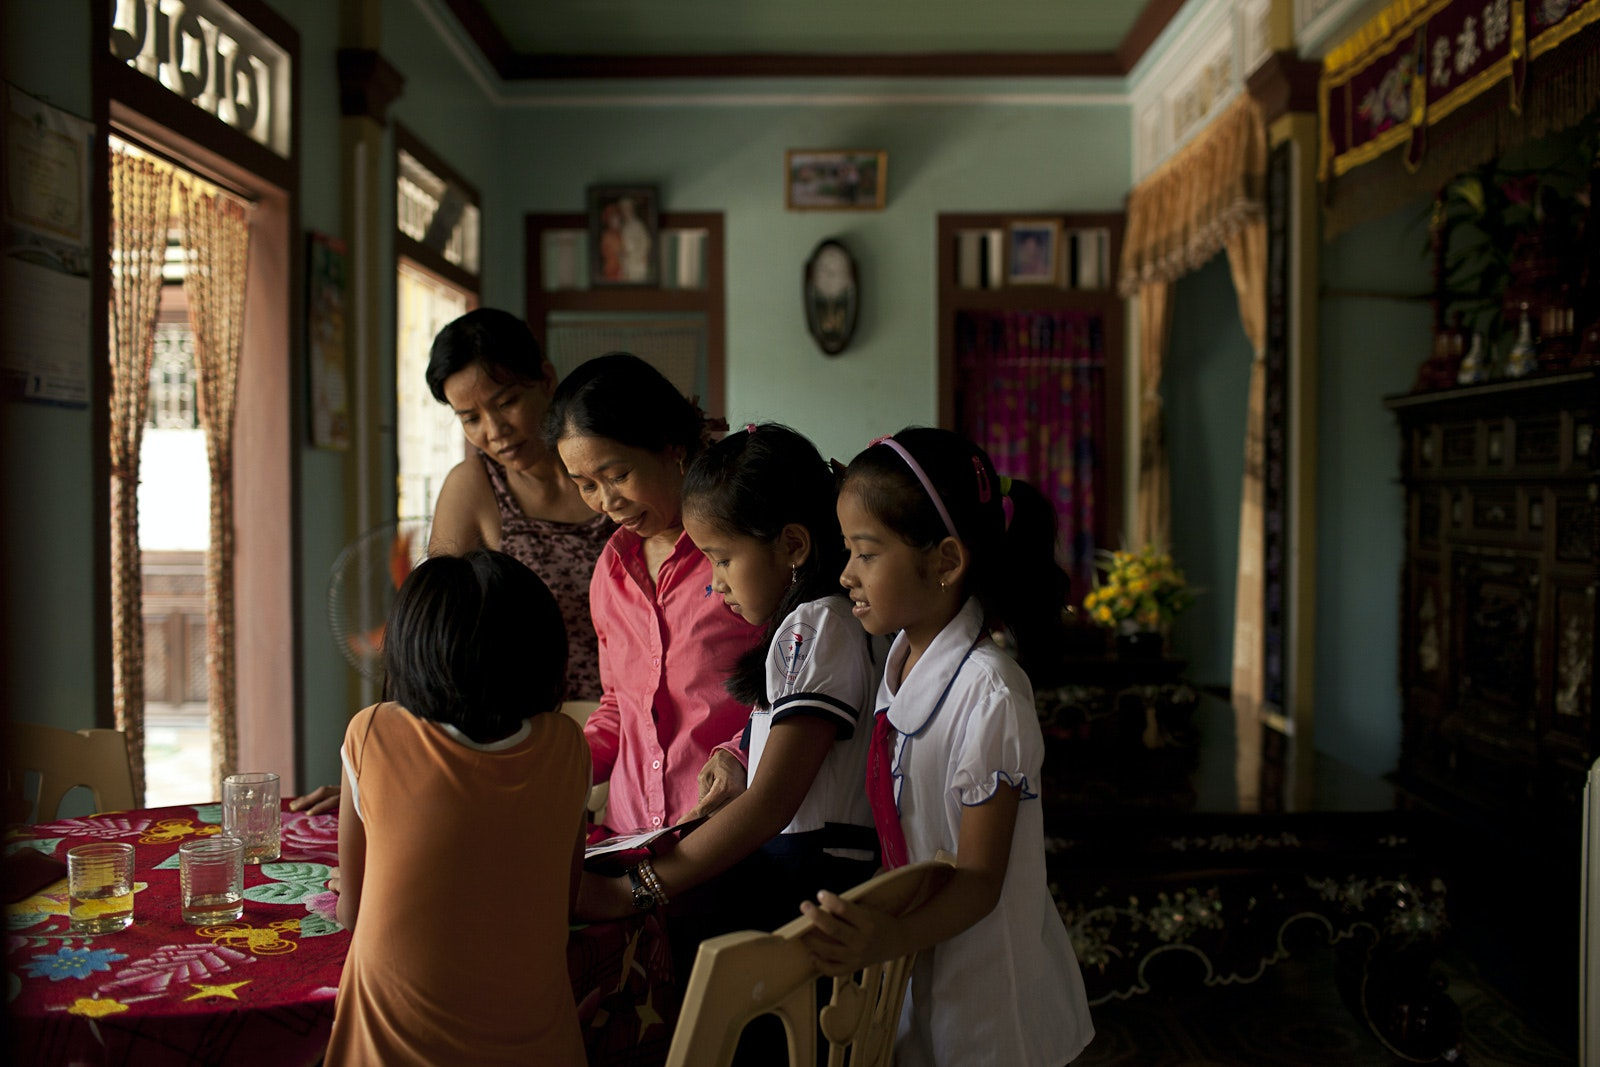 Lisa Abend visited Vietnam's Thuy Phu commune in search of clues about her father.